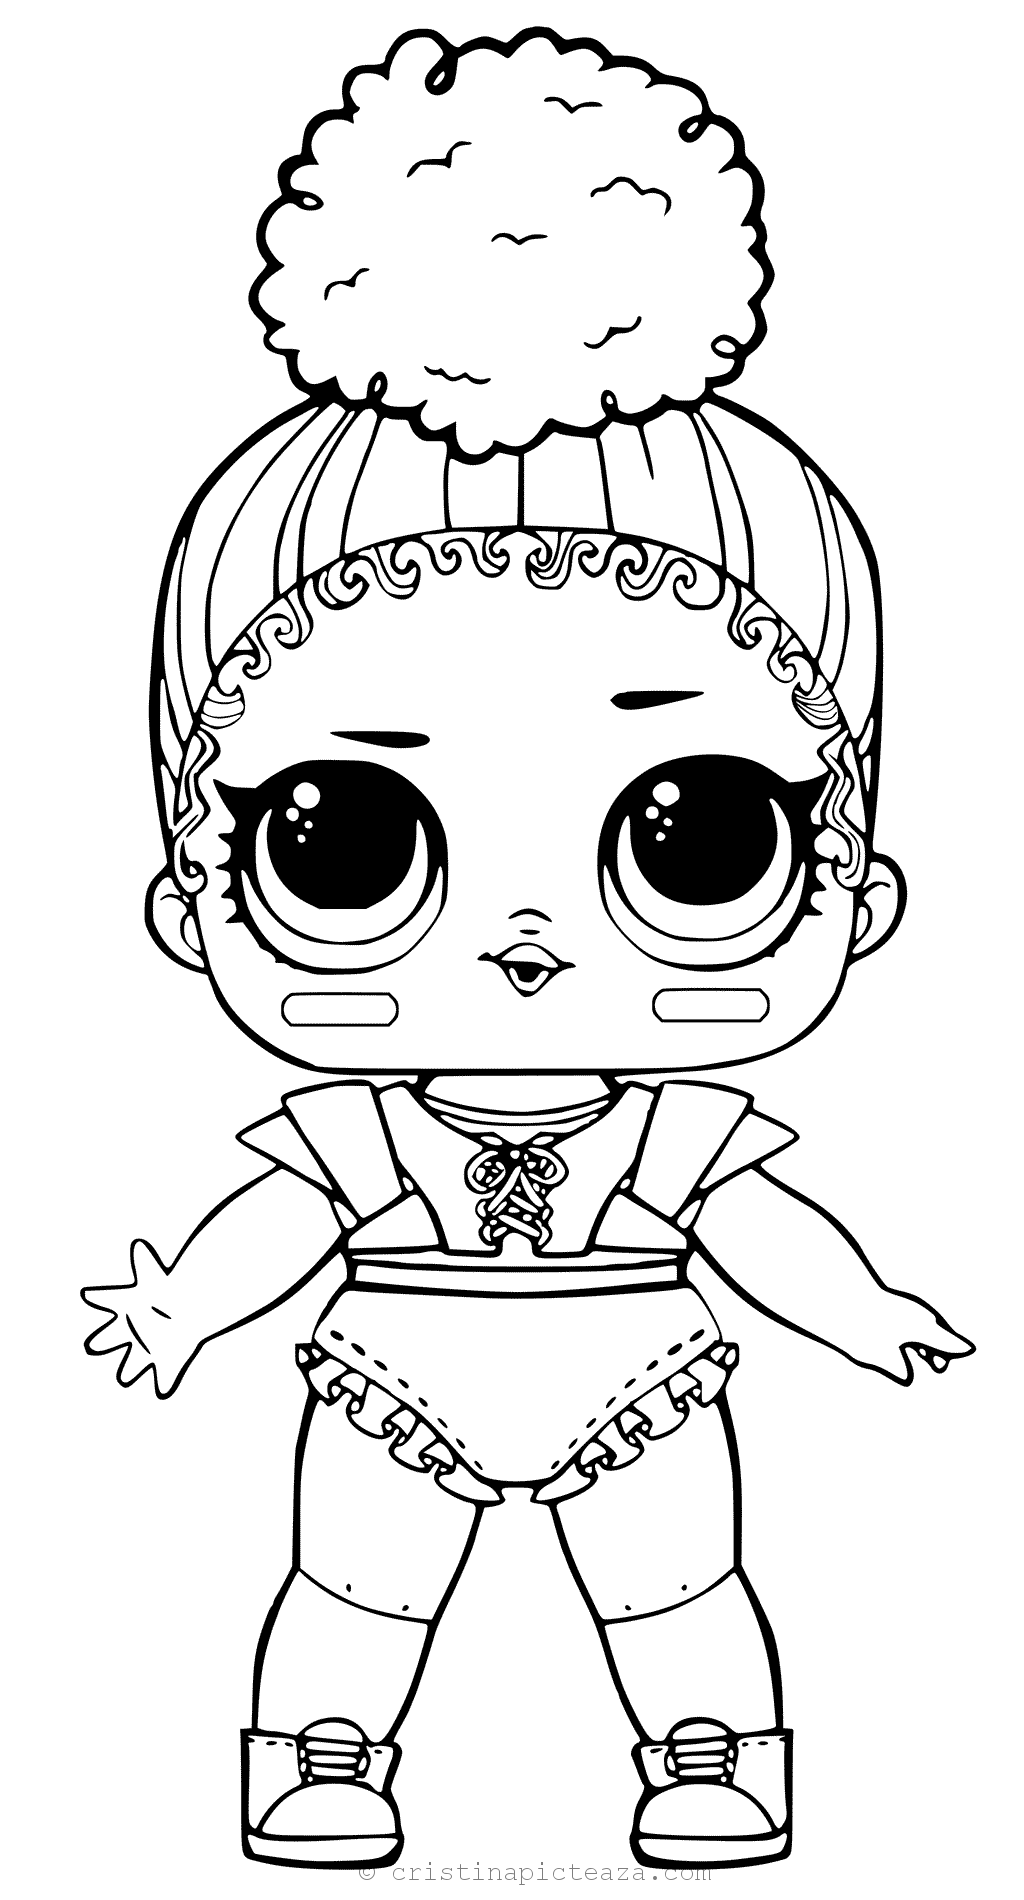 I hope you enjoy these cute lol dolls coloring sheets stay connected because i will be publishing more lol doll coloring pages featuring the pets and